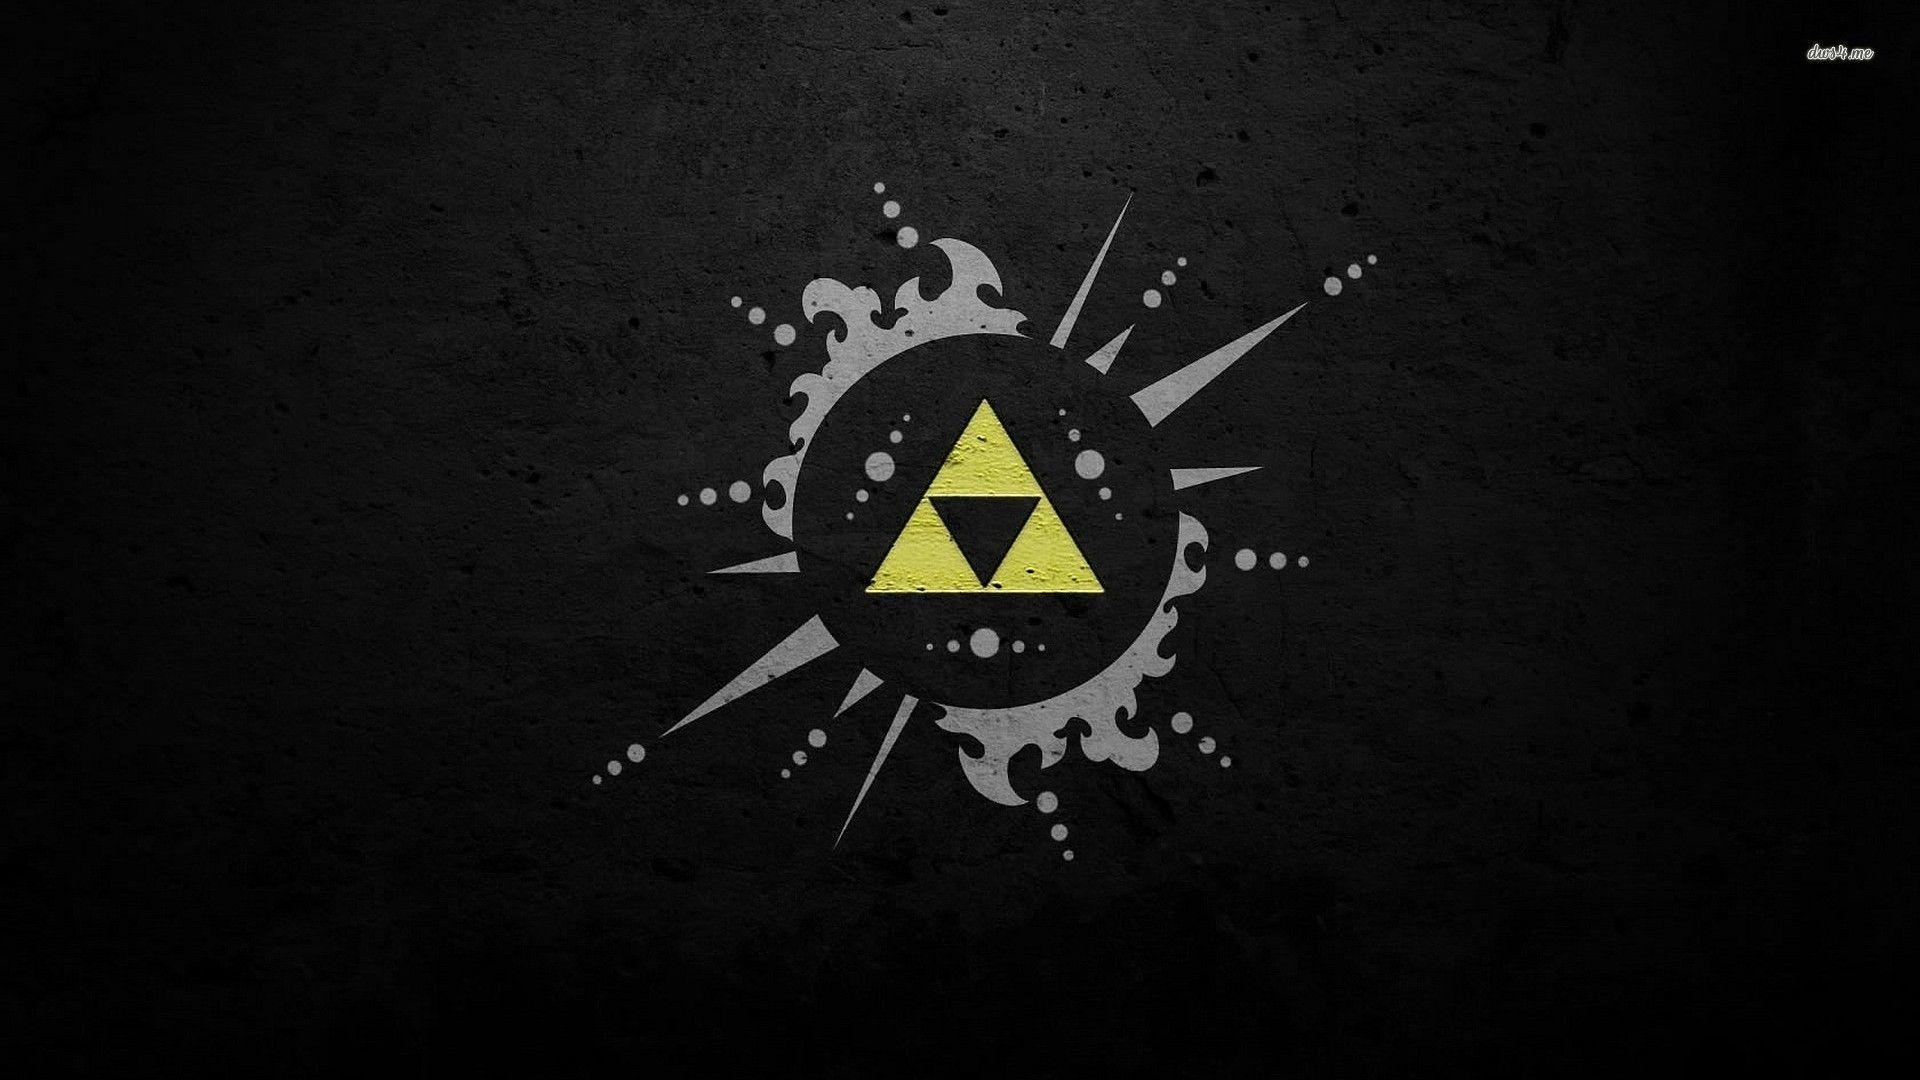 hd zelda wallpapers - photo #9